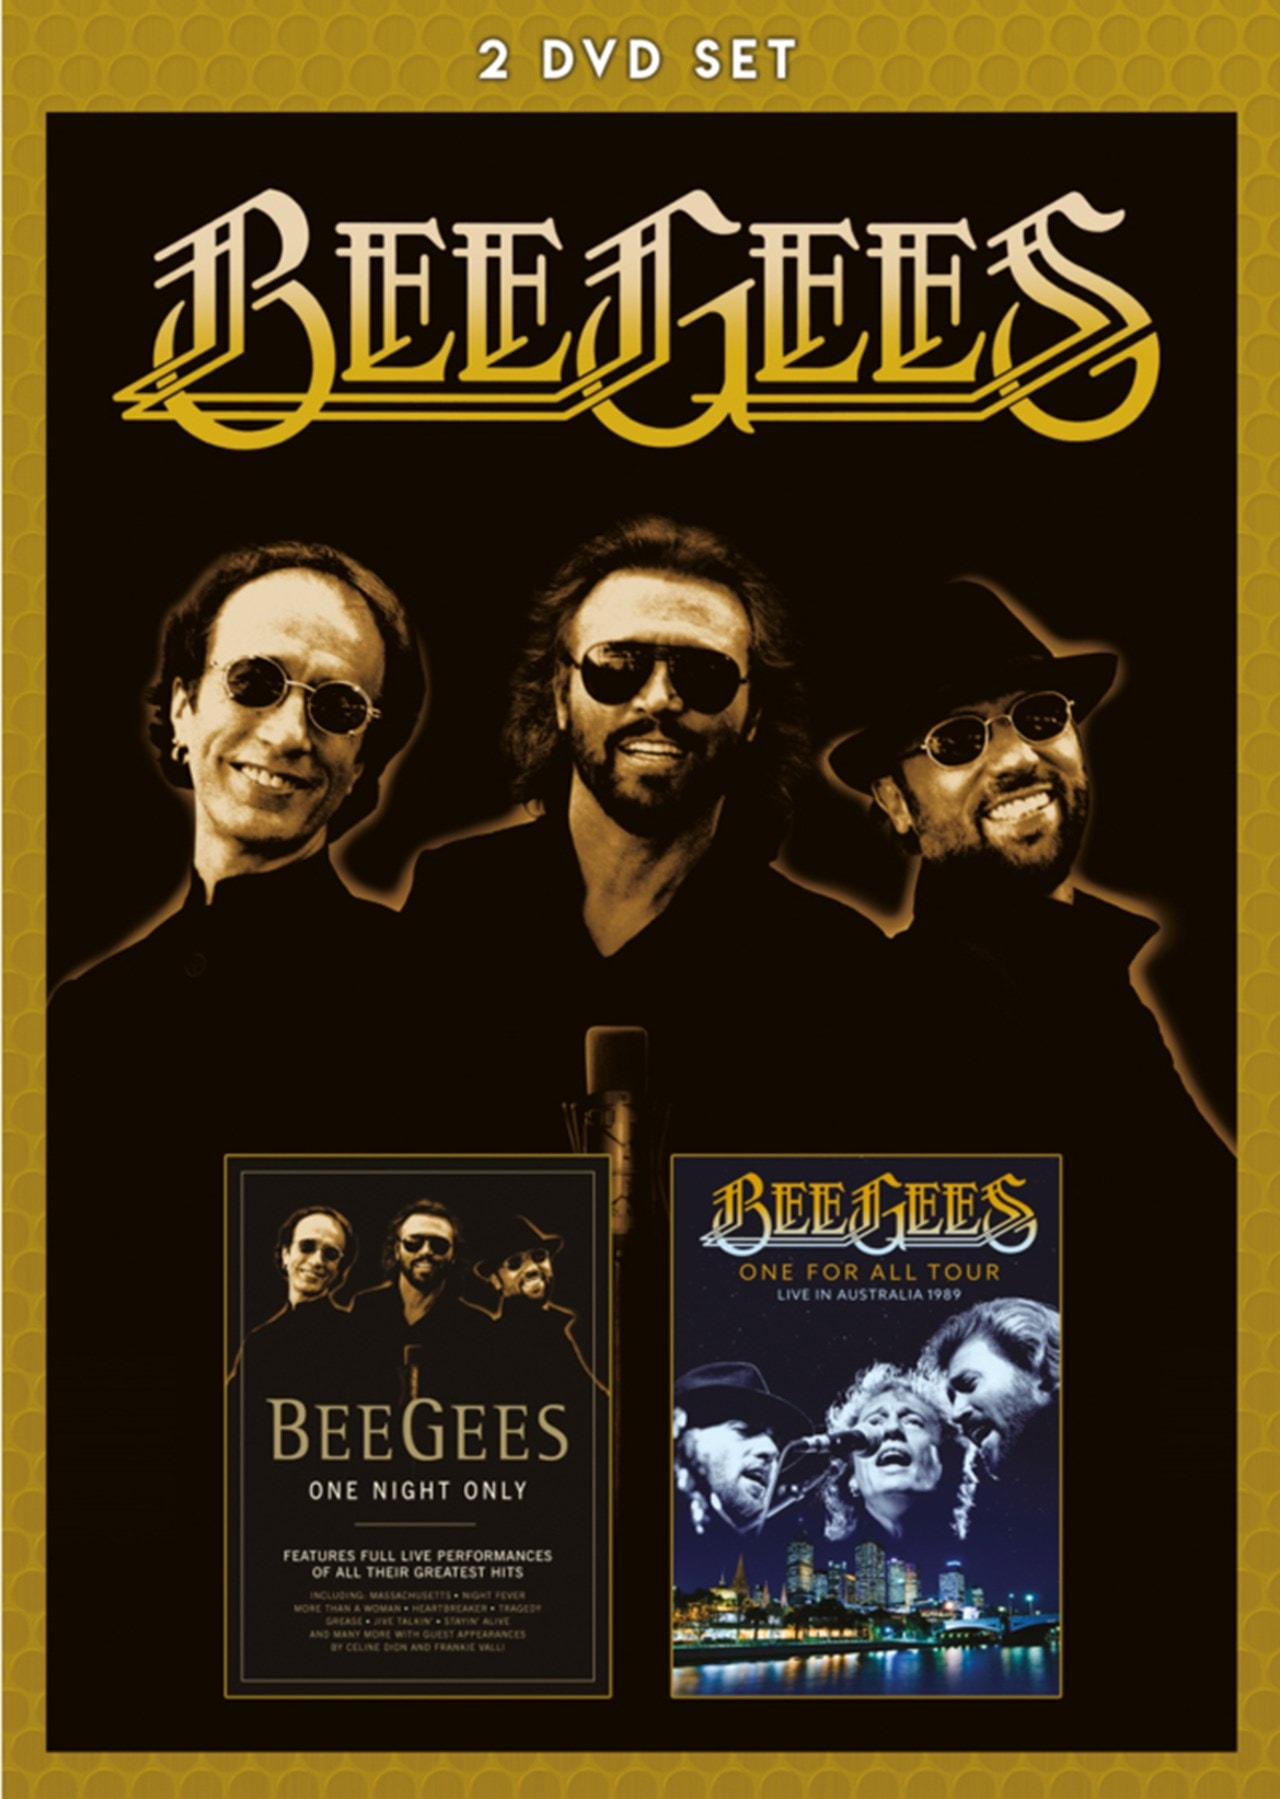 The Bee Gees: One Night Only/One for All Tour - Live in Australia - 1